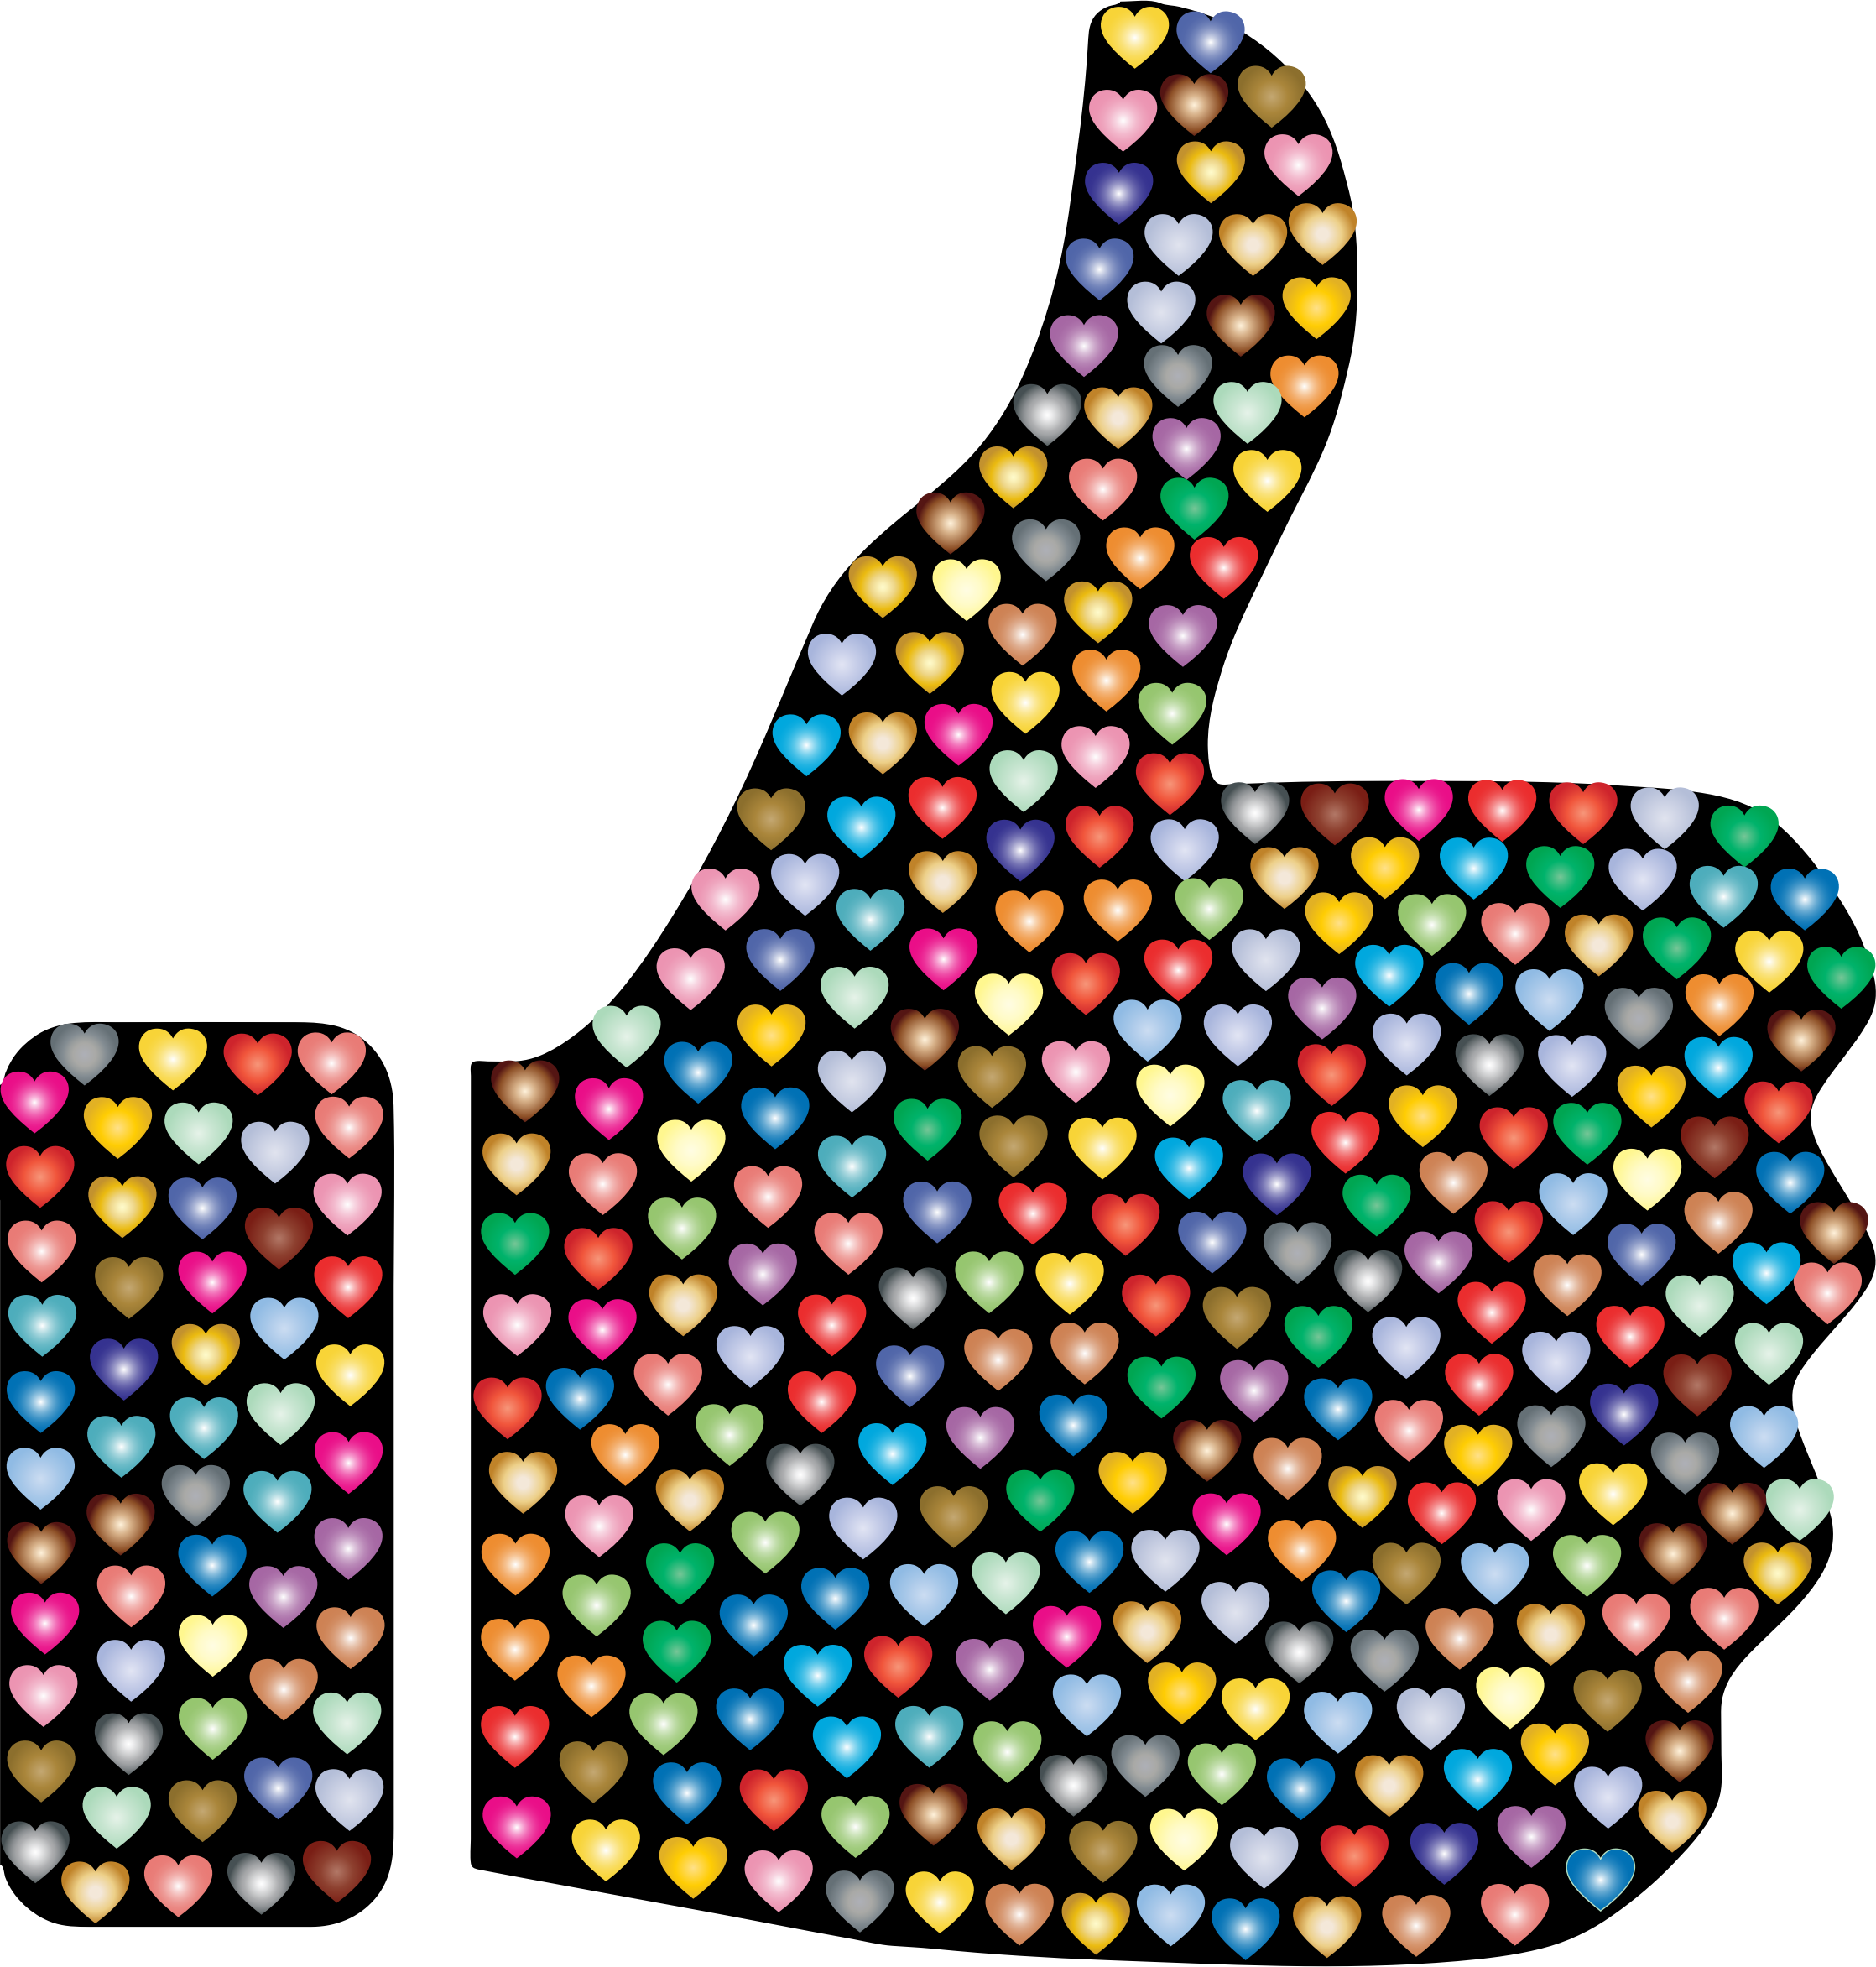 Prismatic Hearts Thumbs Up Silhouette 3 by GDJ